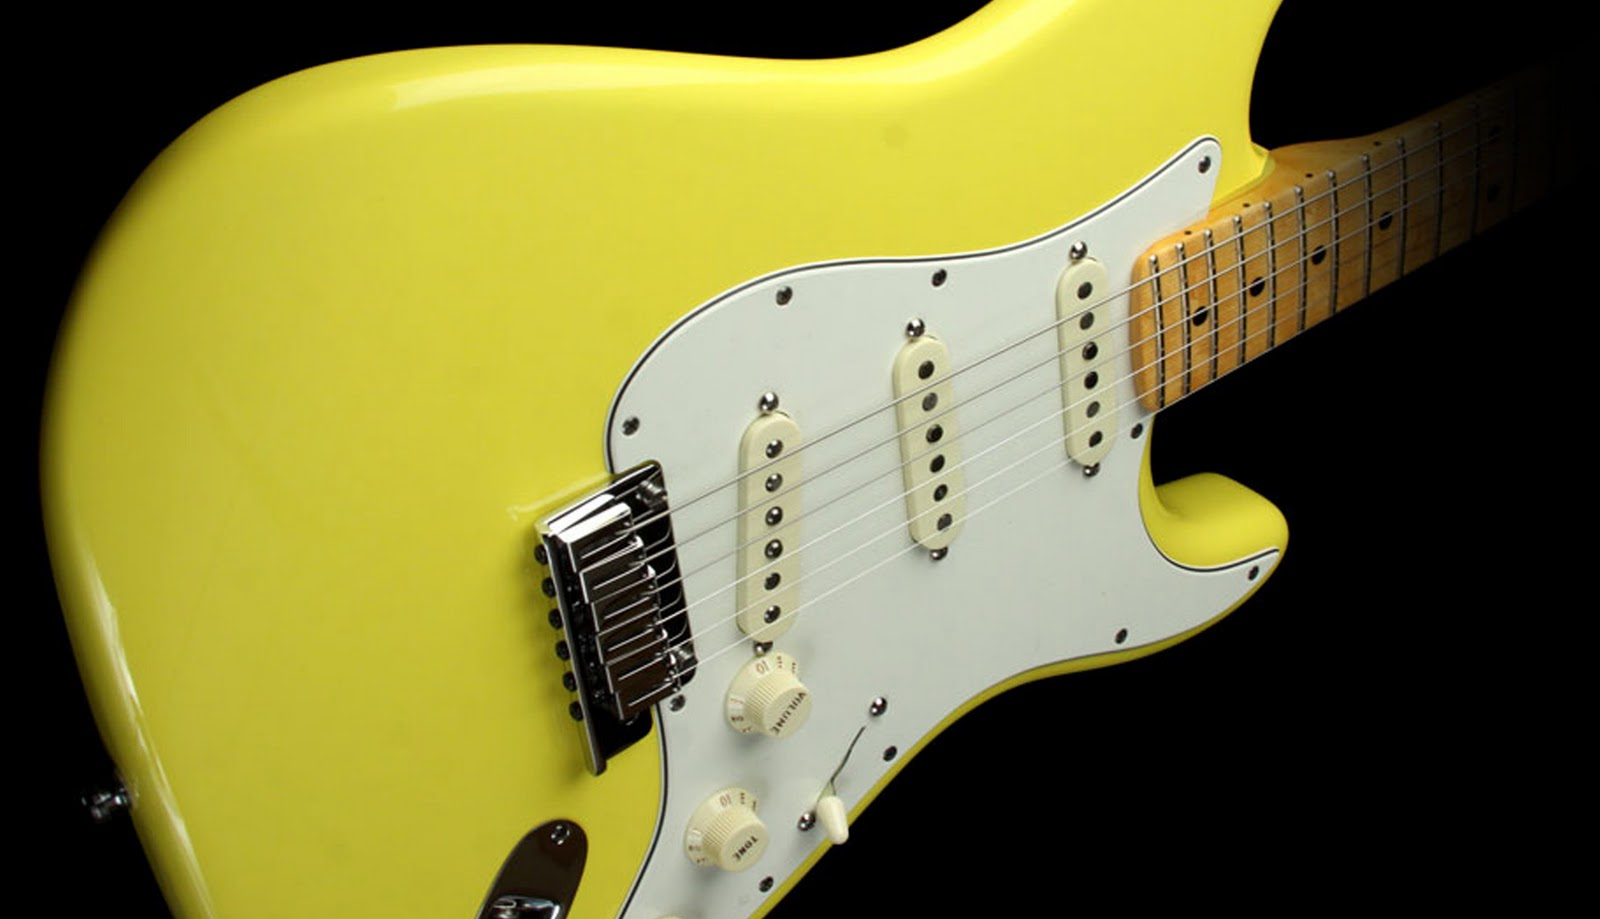 Great guitar sound march 2011 - Fender stratocaster wallpaper hd ...